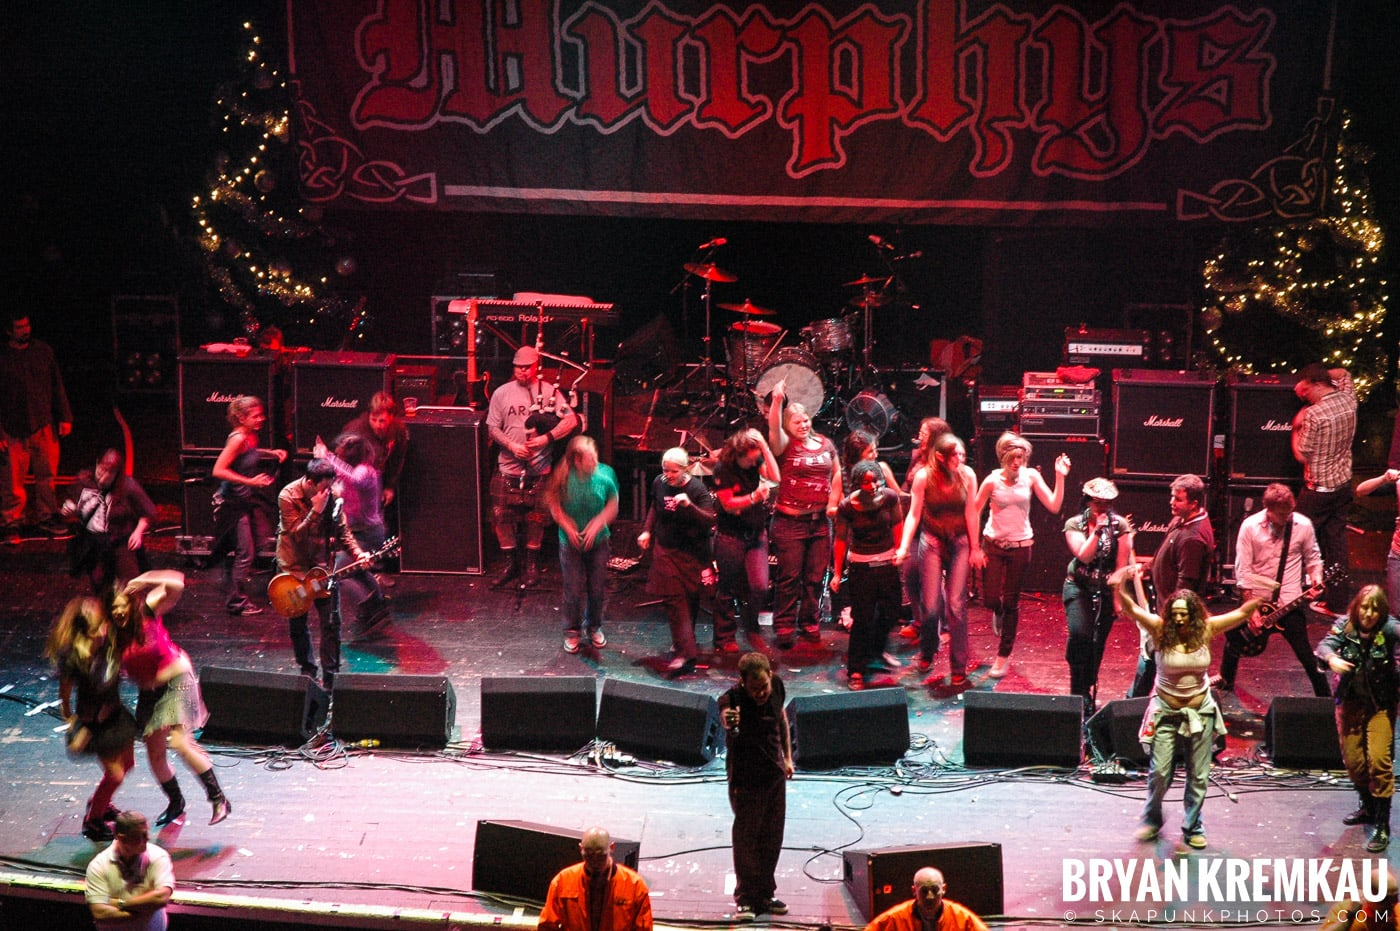 Dropkick Murphys @ Brixton Academy, London UK - 12.19.05 (1)